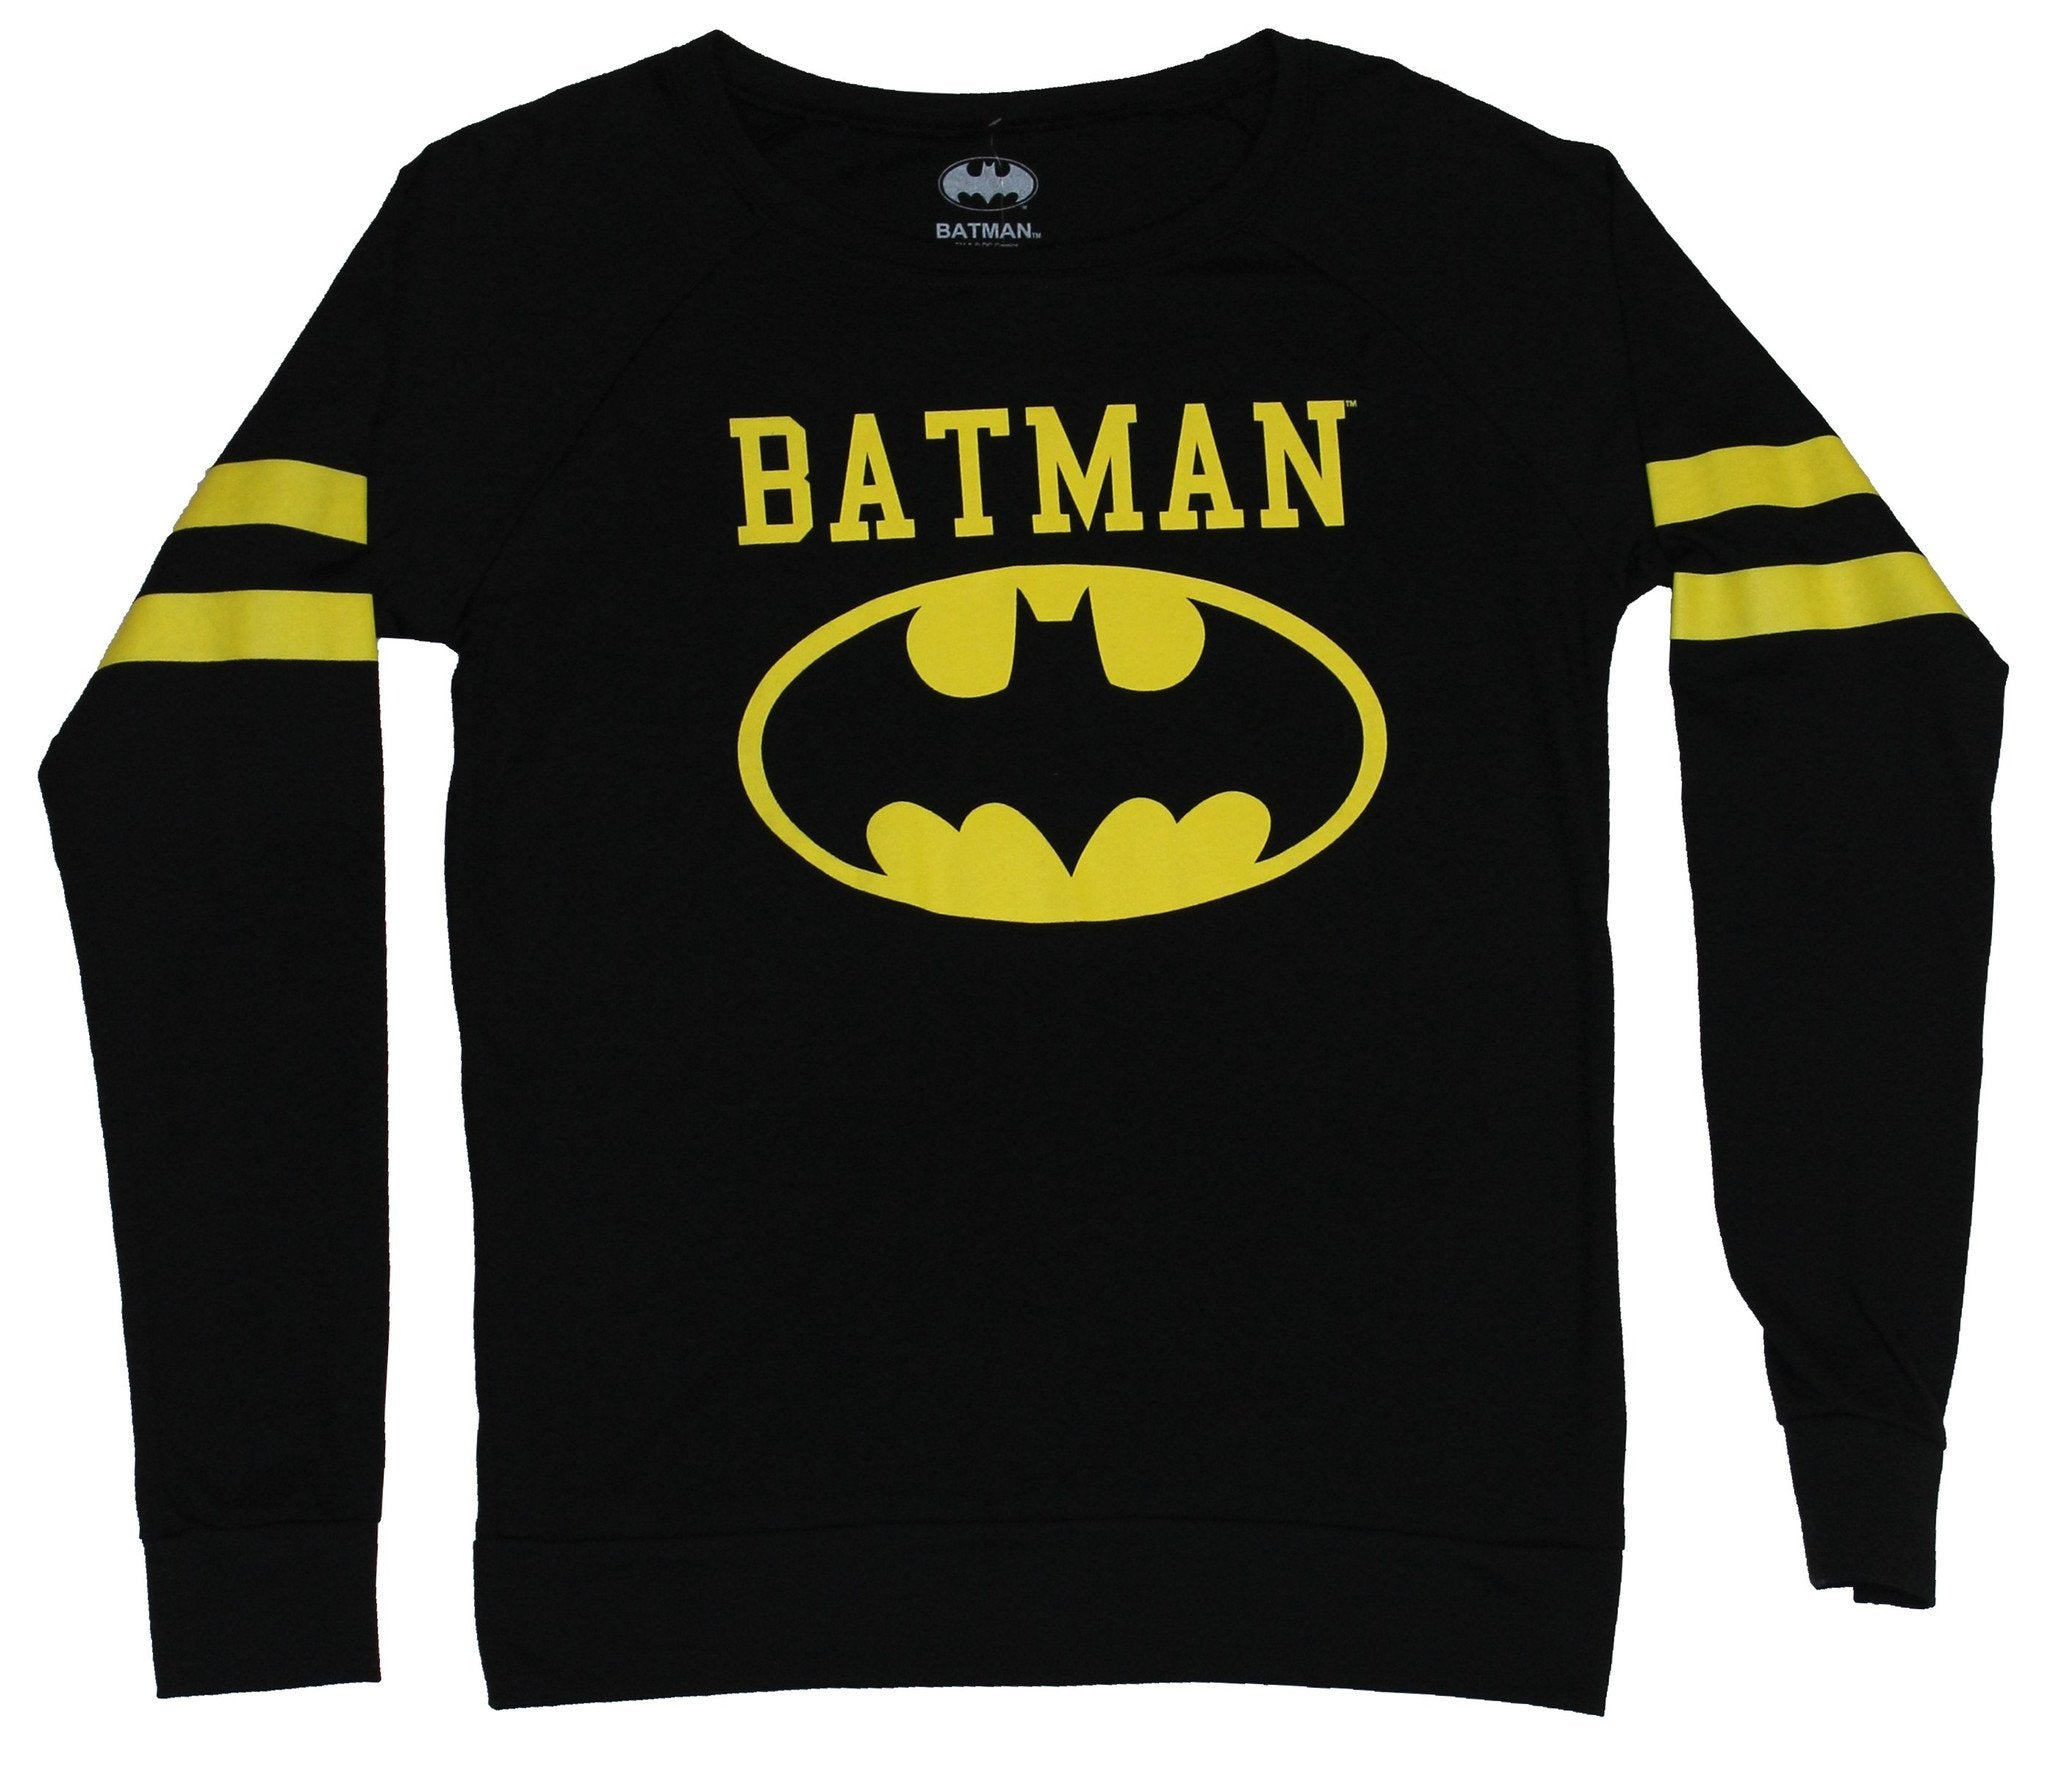 Batman (DC Comics) Girls Juniors Light Sweatshirt - Oval & Name Striped Sleeve